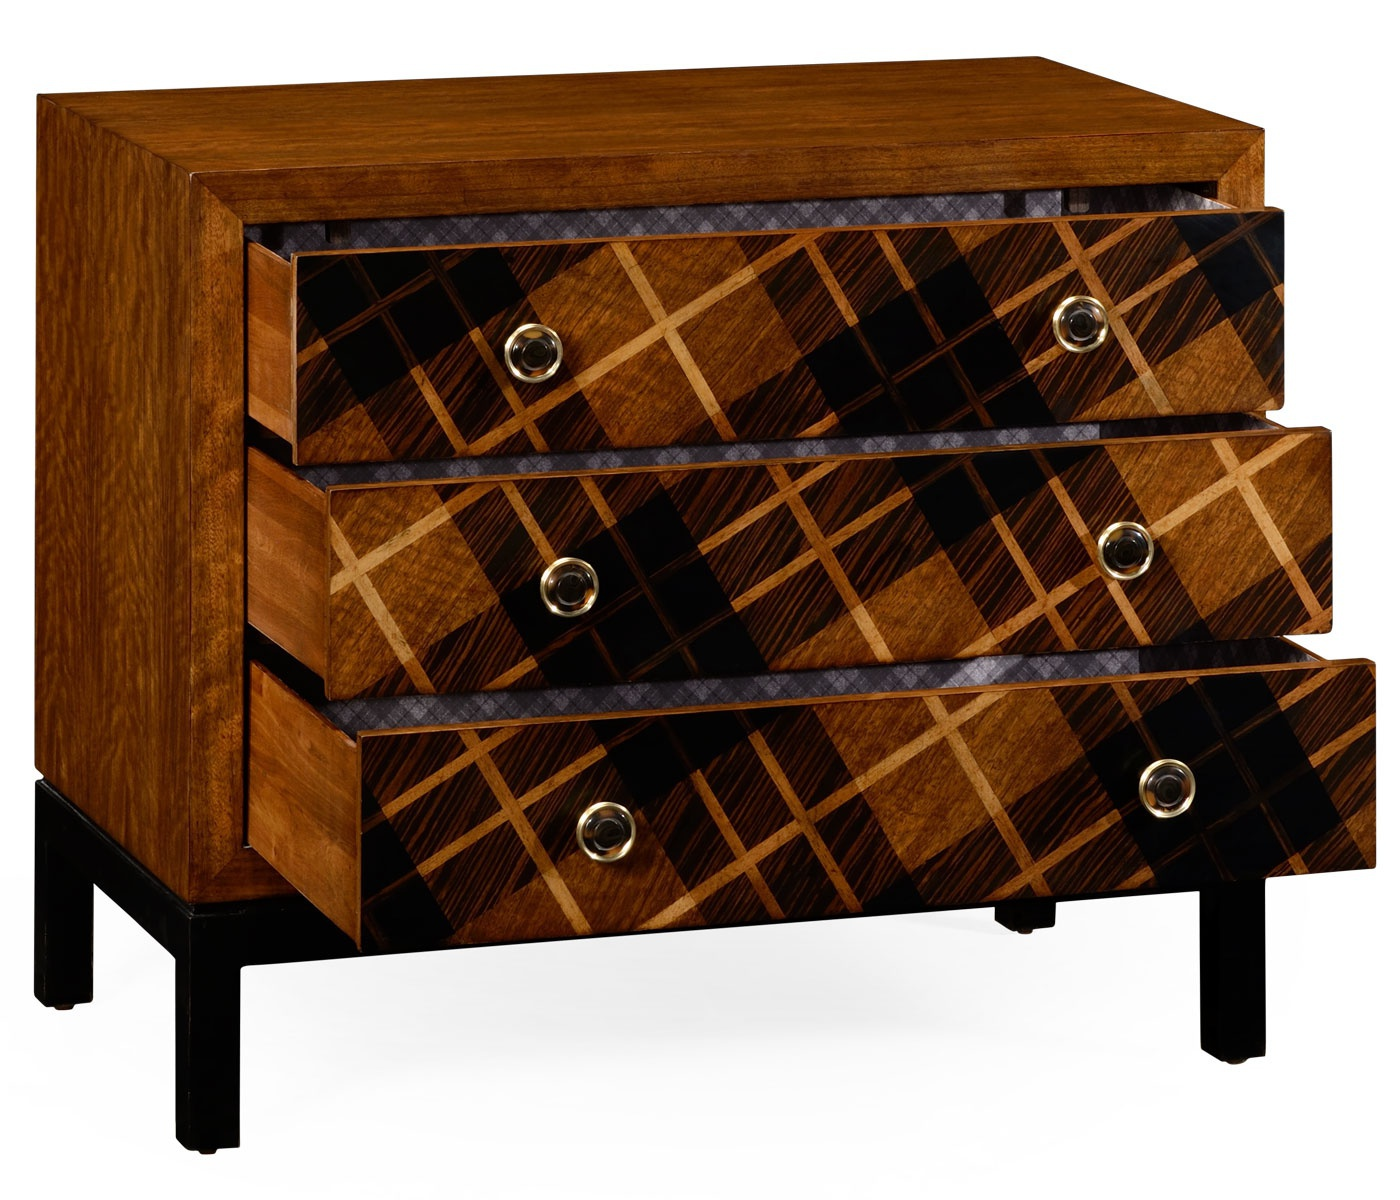 chest of drawers with inlaid wood facade alexander julian